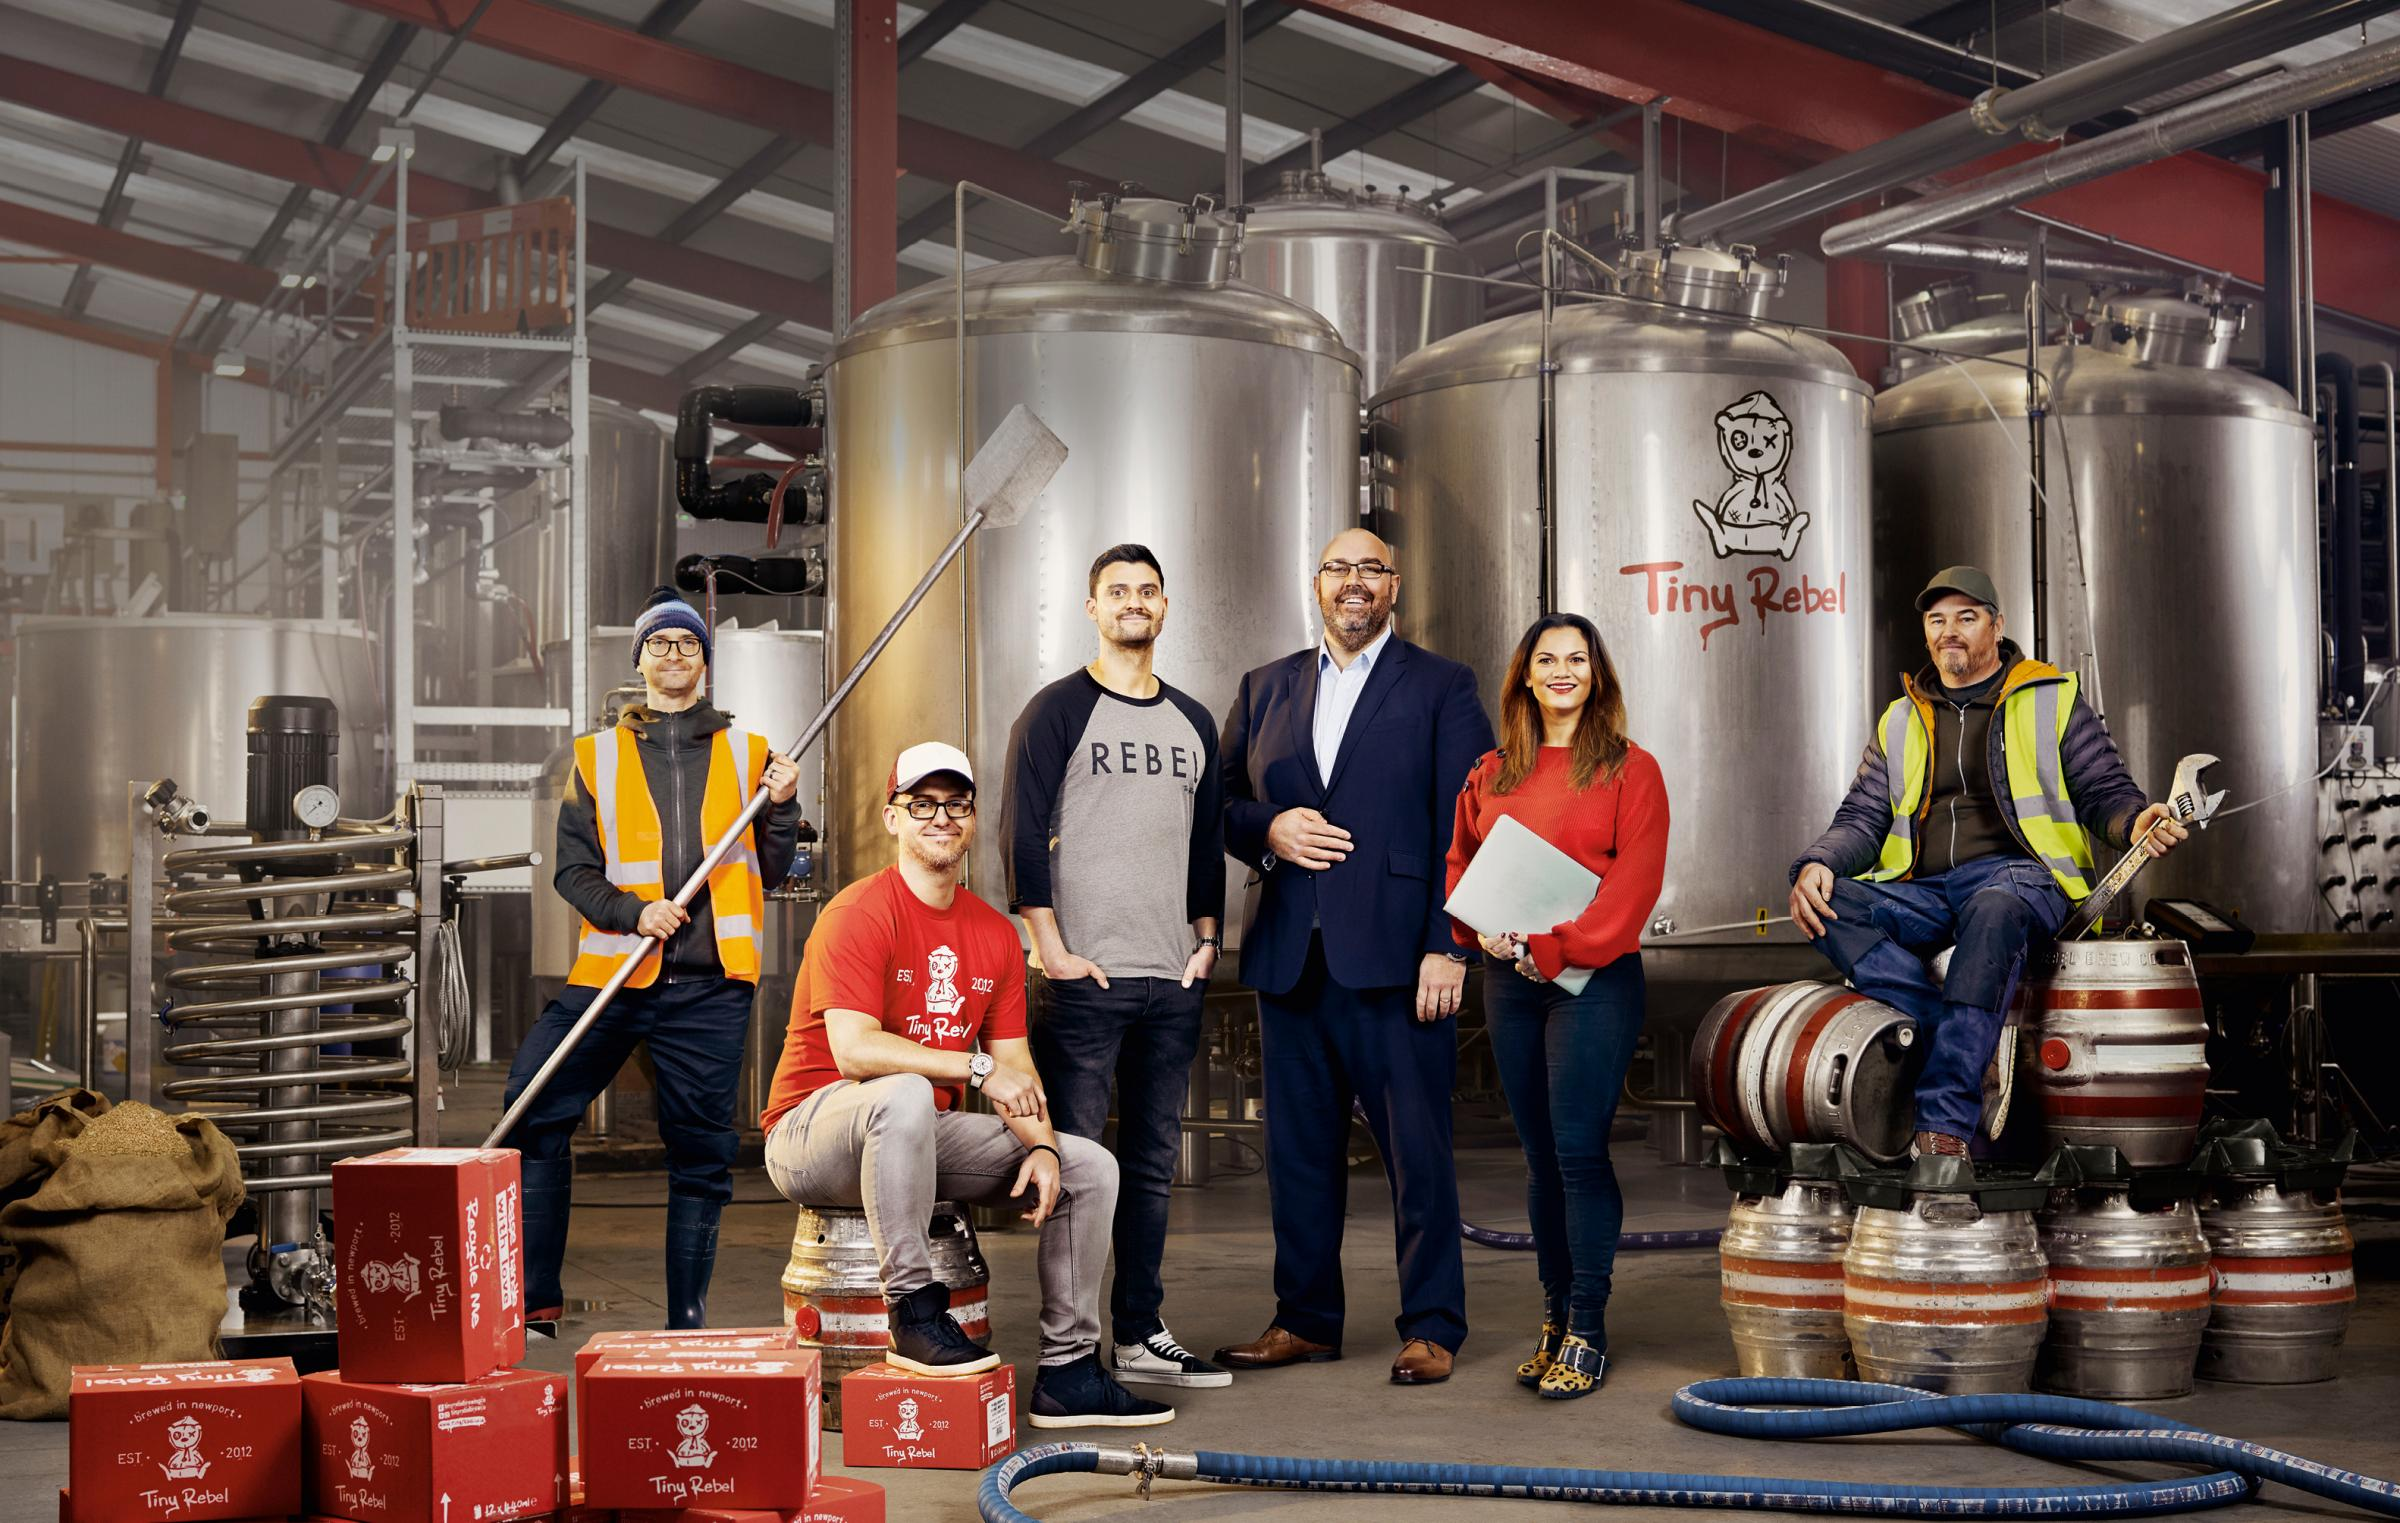 From left to right: Paul Reid (TR), Gareth Williams (TR), Brad Cummings (TR), David Williams (Lloyds Bank), Hannah Williams (TR), Trev Mizon (TR).